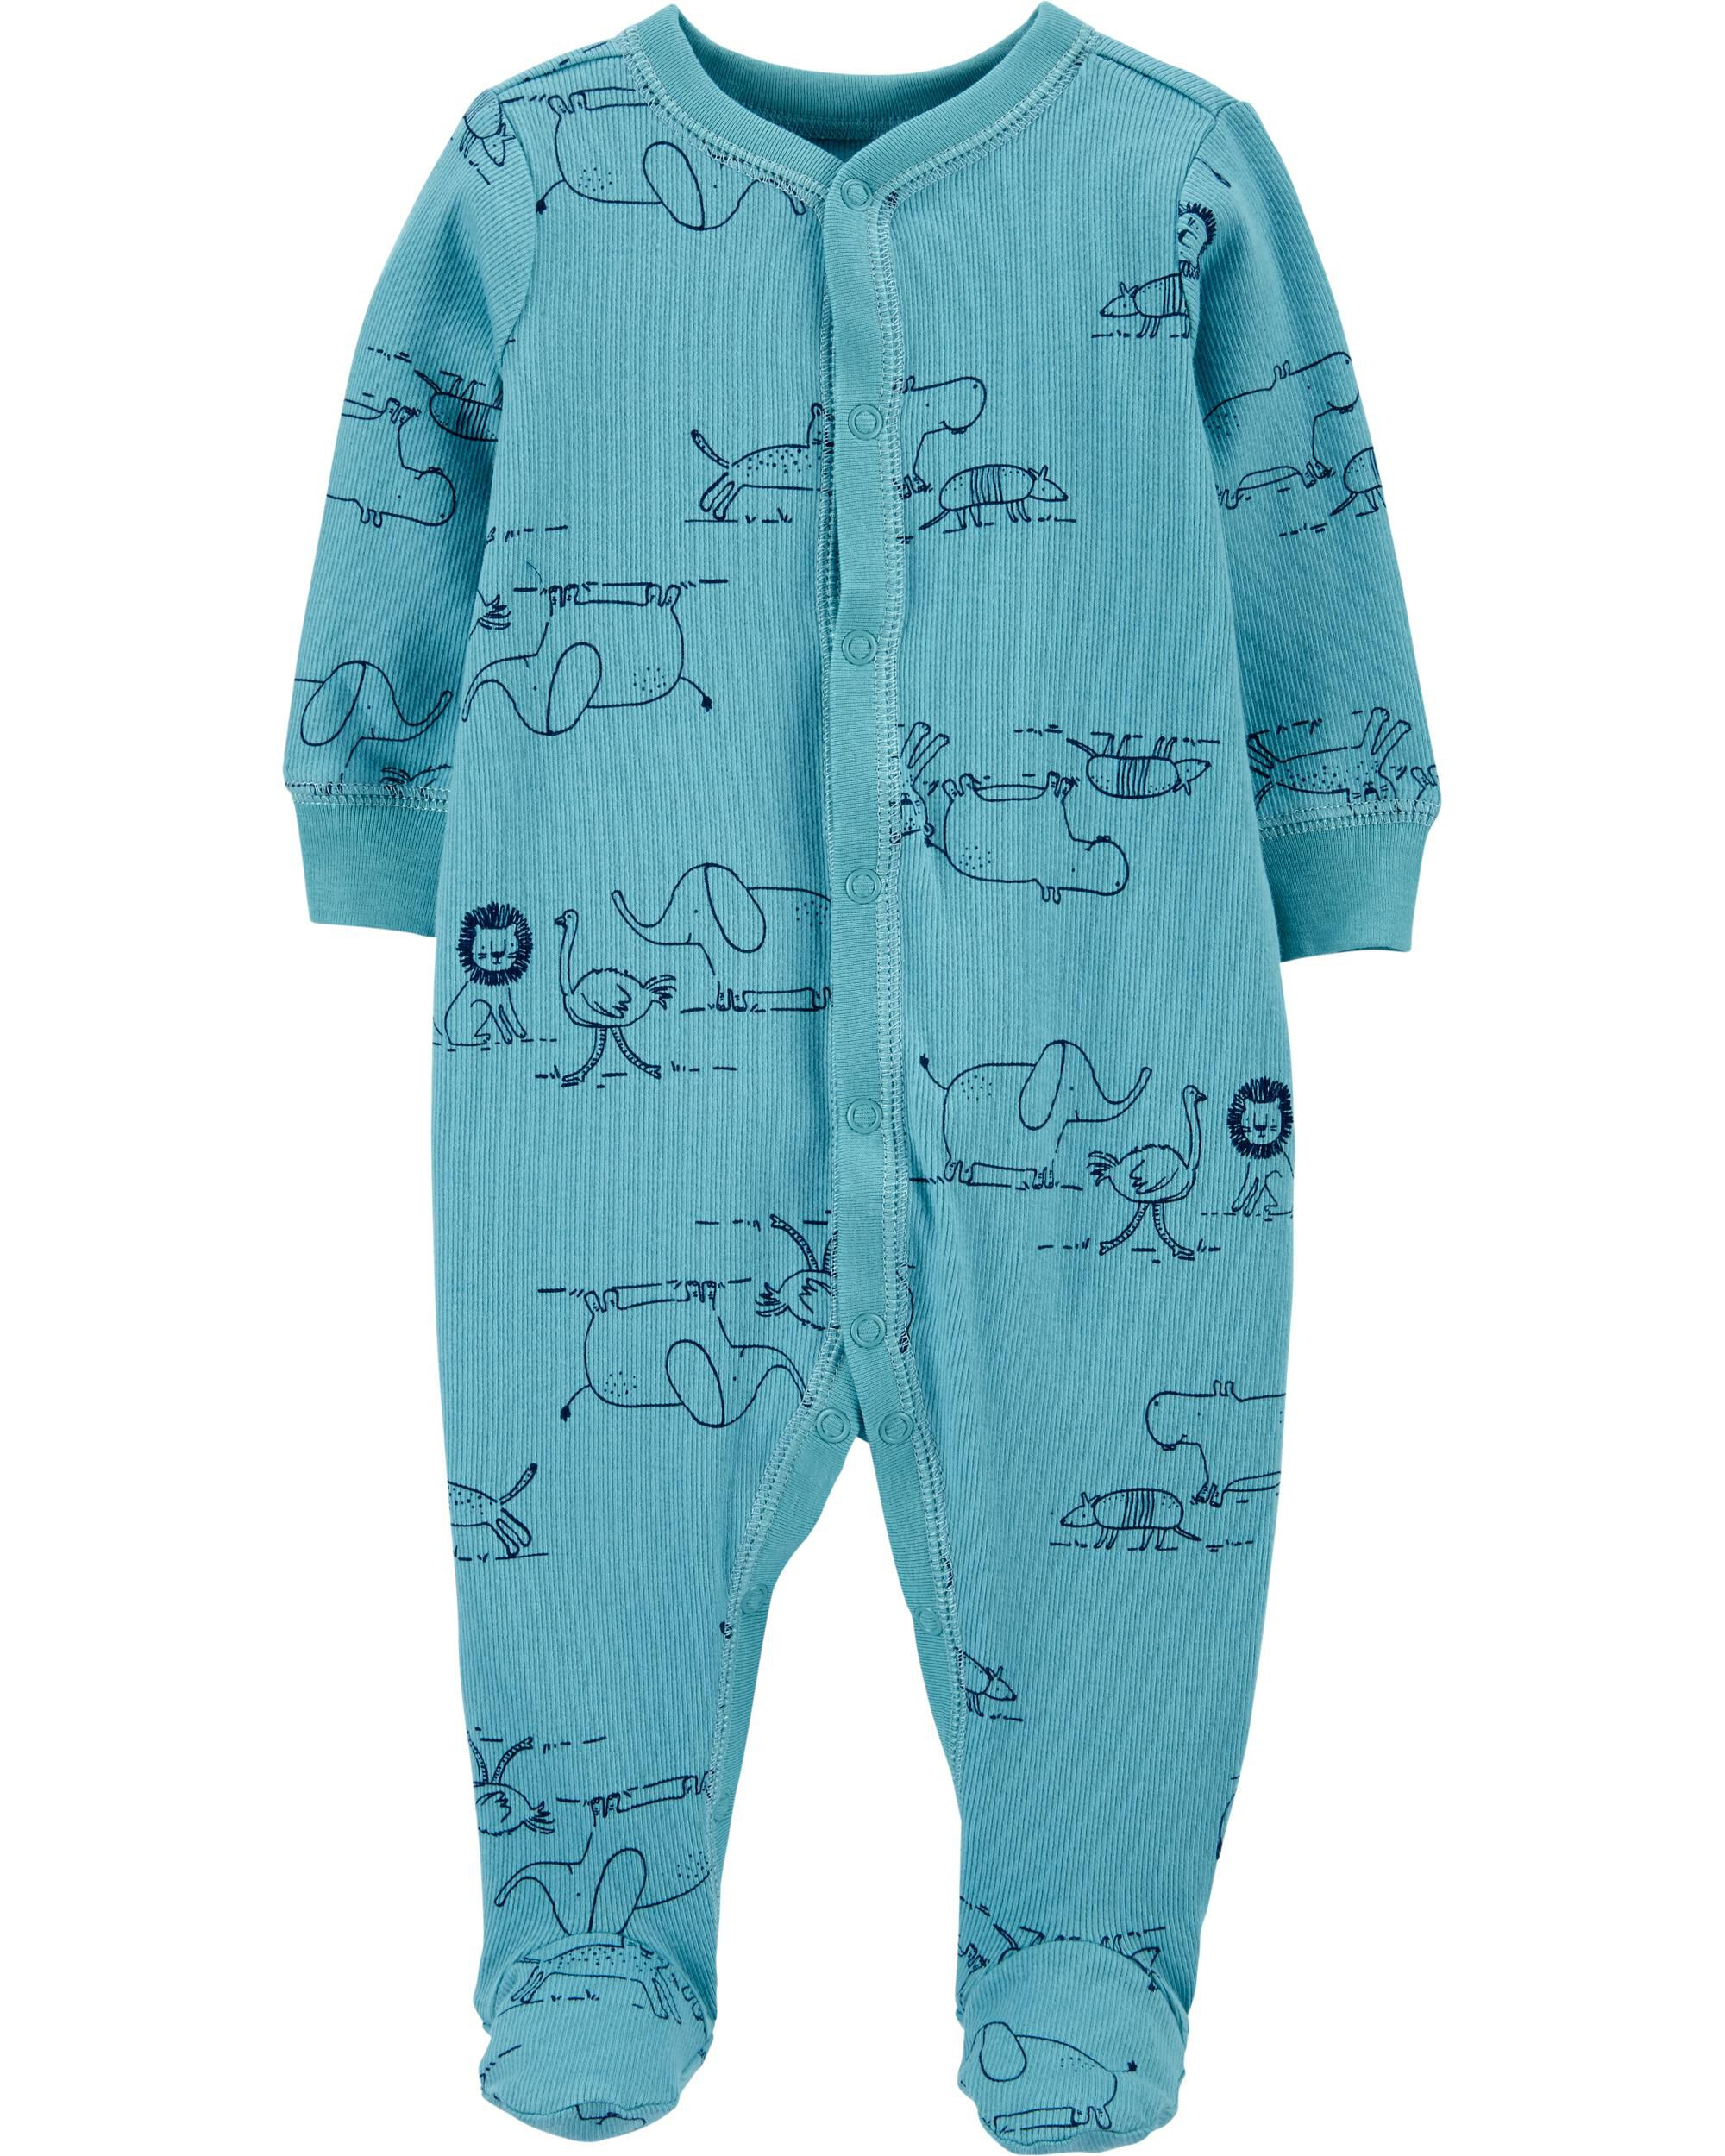 Carters Baby Boy Set of 3 One piece Shirts Zoo Animals Size 3 12 Months 6